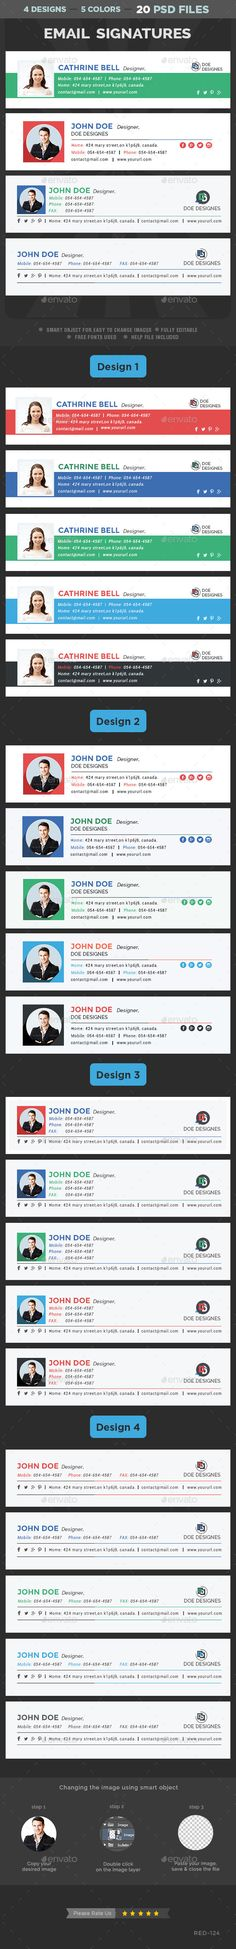 Email Signature Templates - 4 Designs - 5 colors by doto Email Signature Templates 4 Designs, 5 colors each. Clean & Professional Design Multipurpose Use Completely editable Easily c